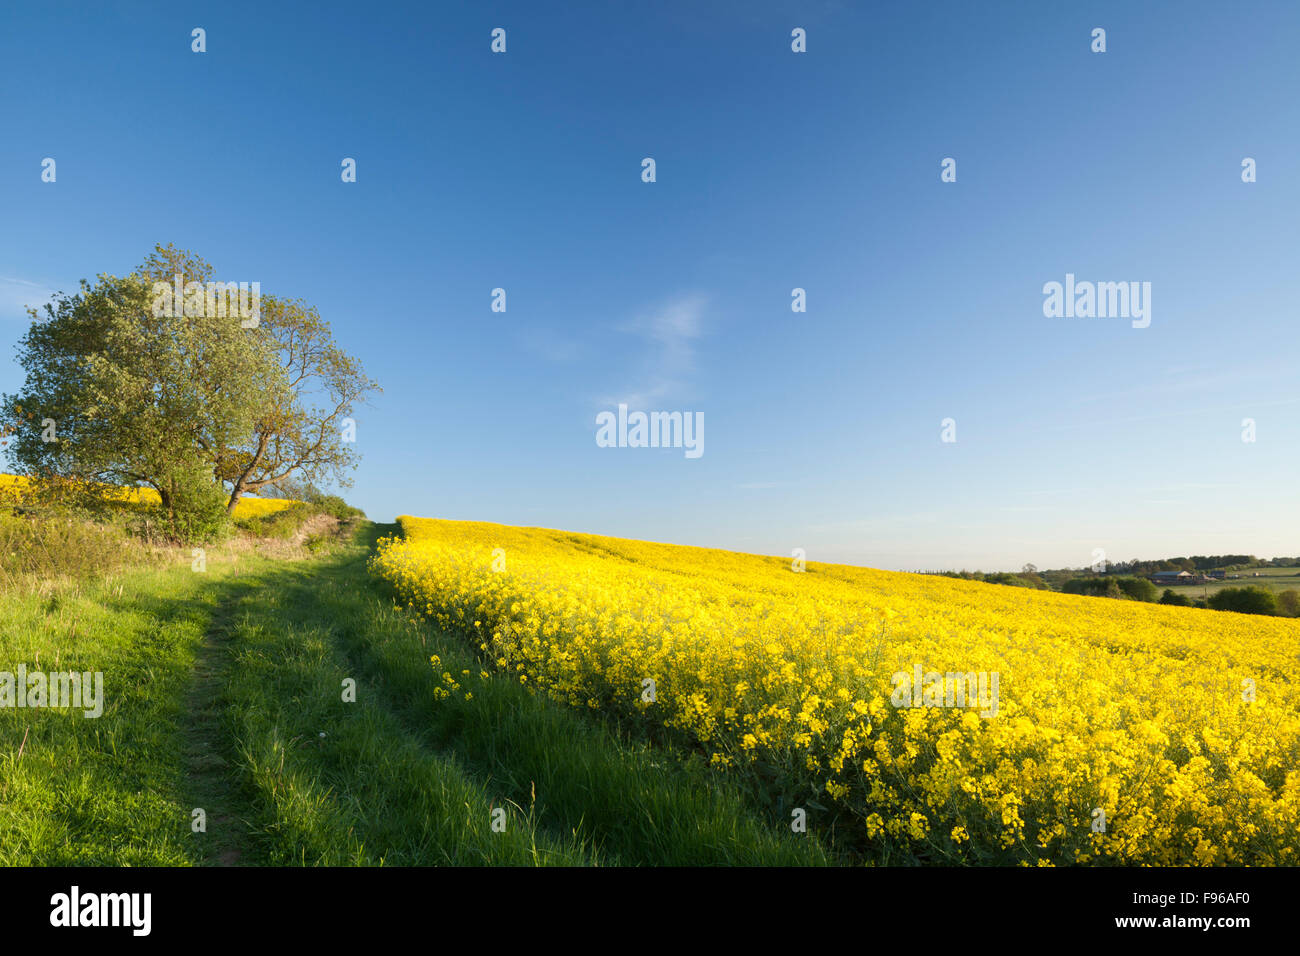 Oilseed Crop Stock Photos & Oilseed Crop Stock Images - Alamy